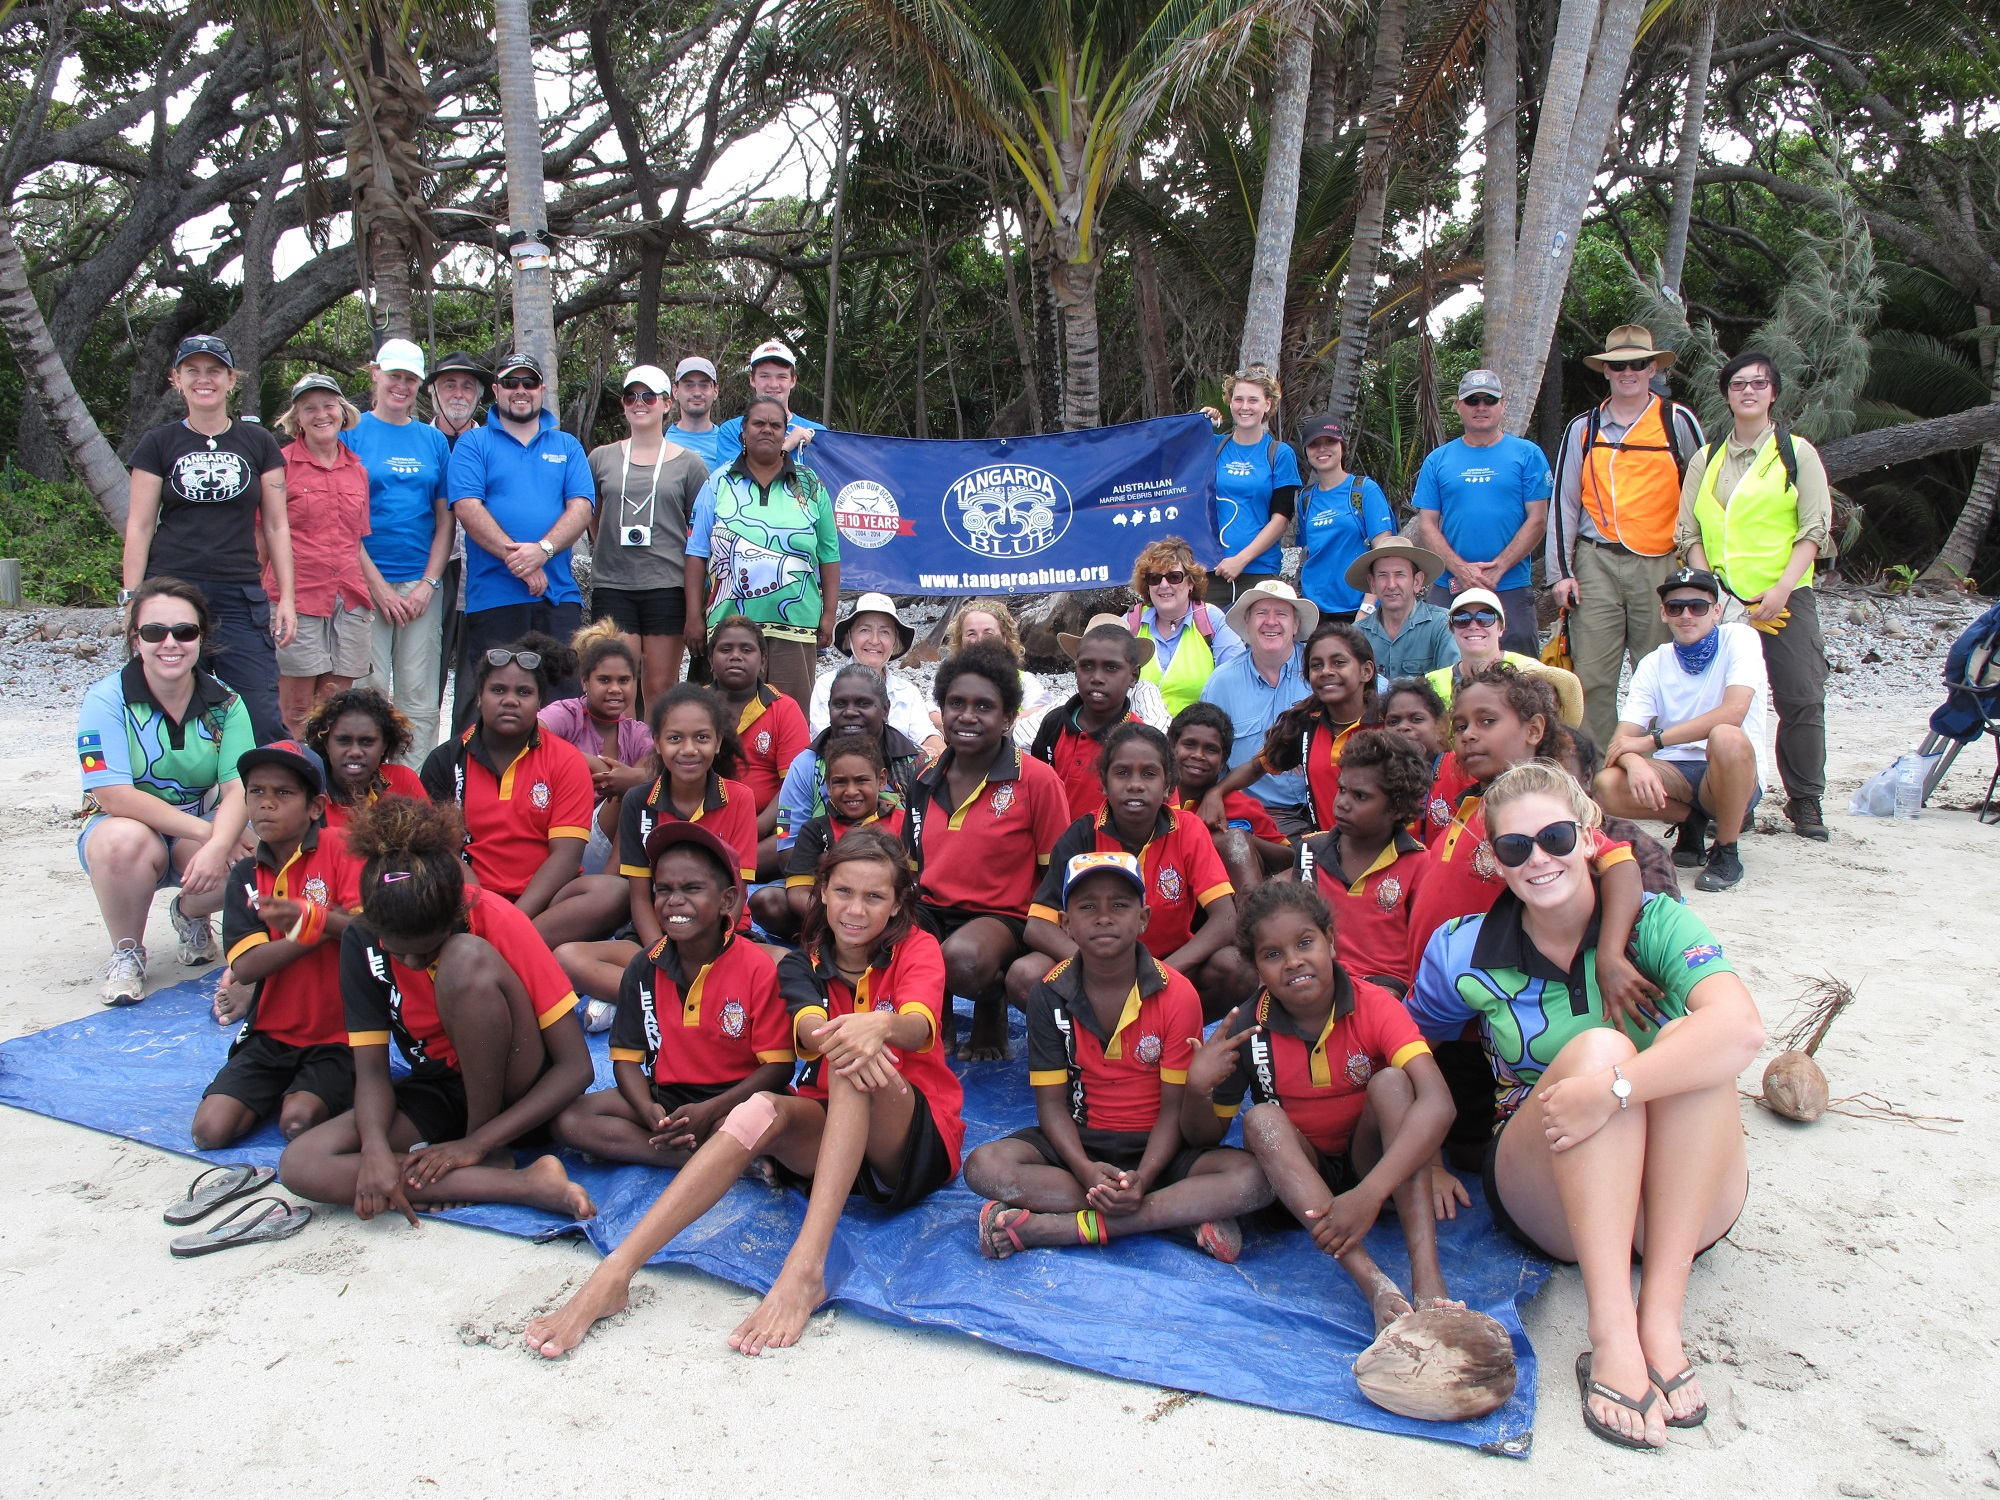 Industry news: Tangaroa Blue Foundation Cape York clean up events